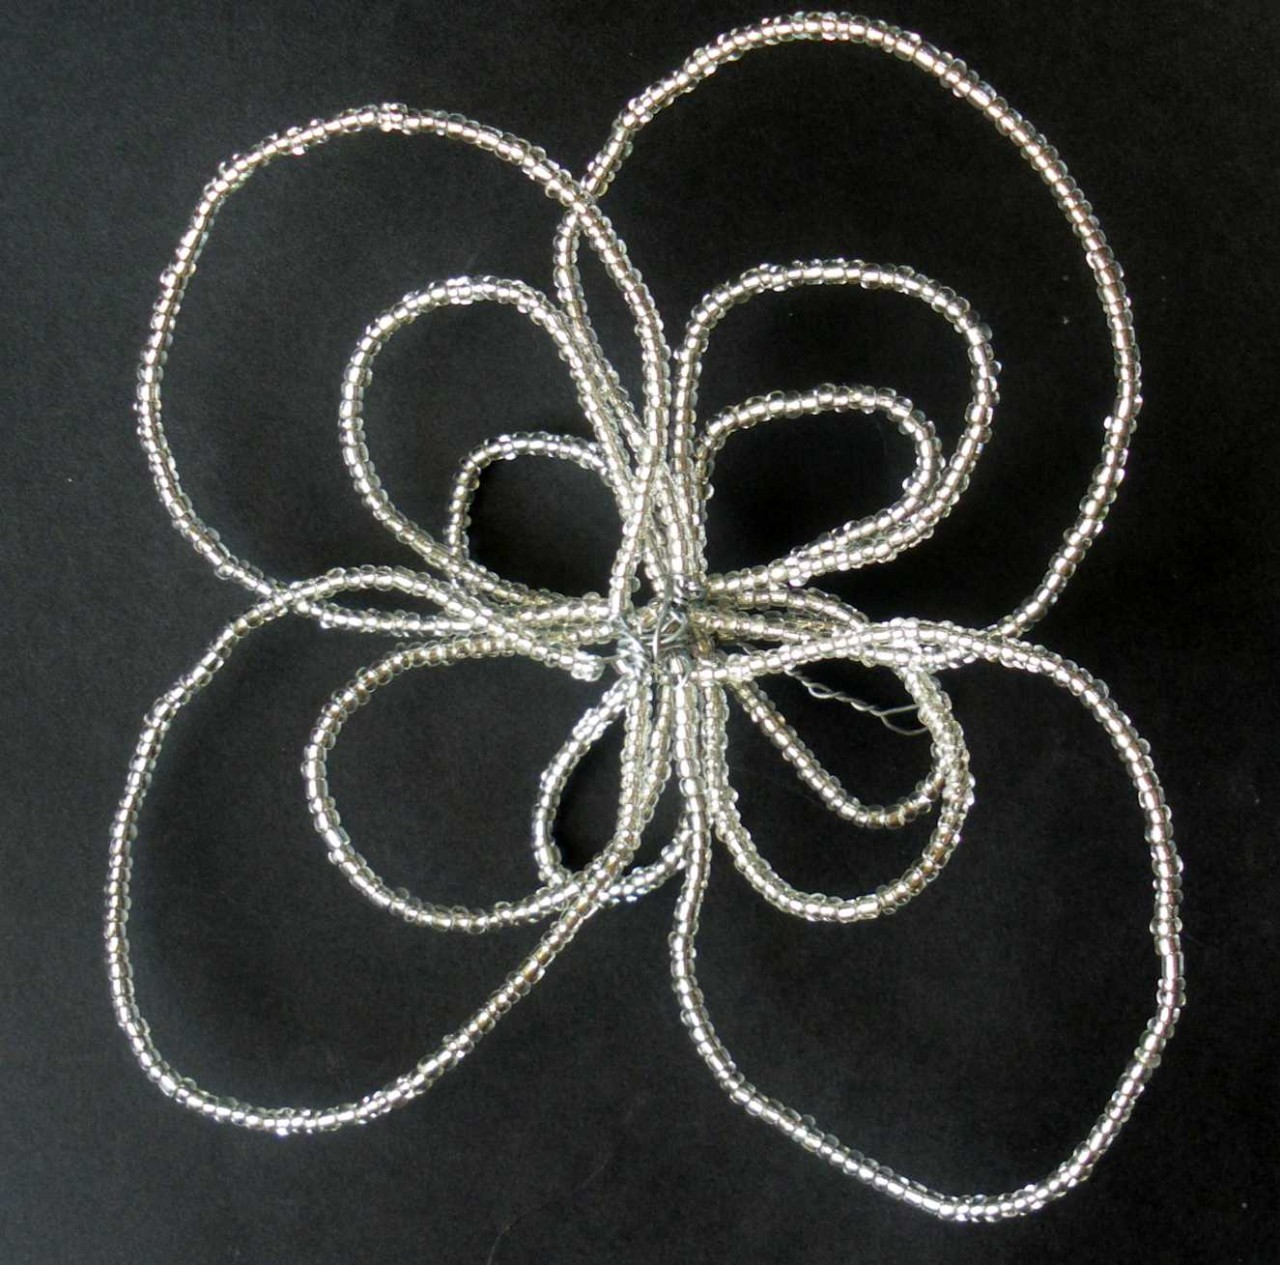 Wirechic Fantasy Beaded Christmas Star Decoration - Silver